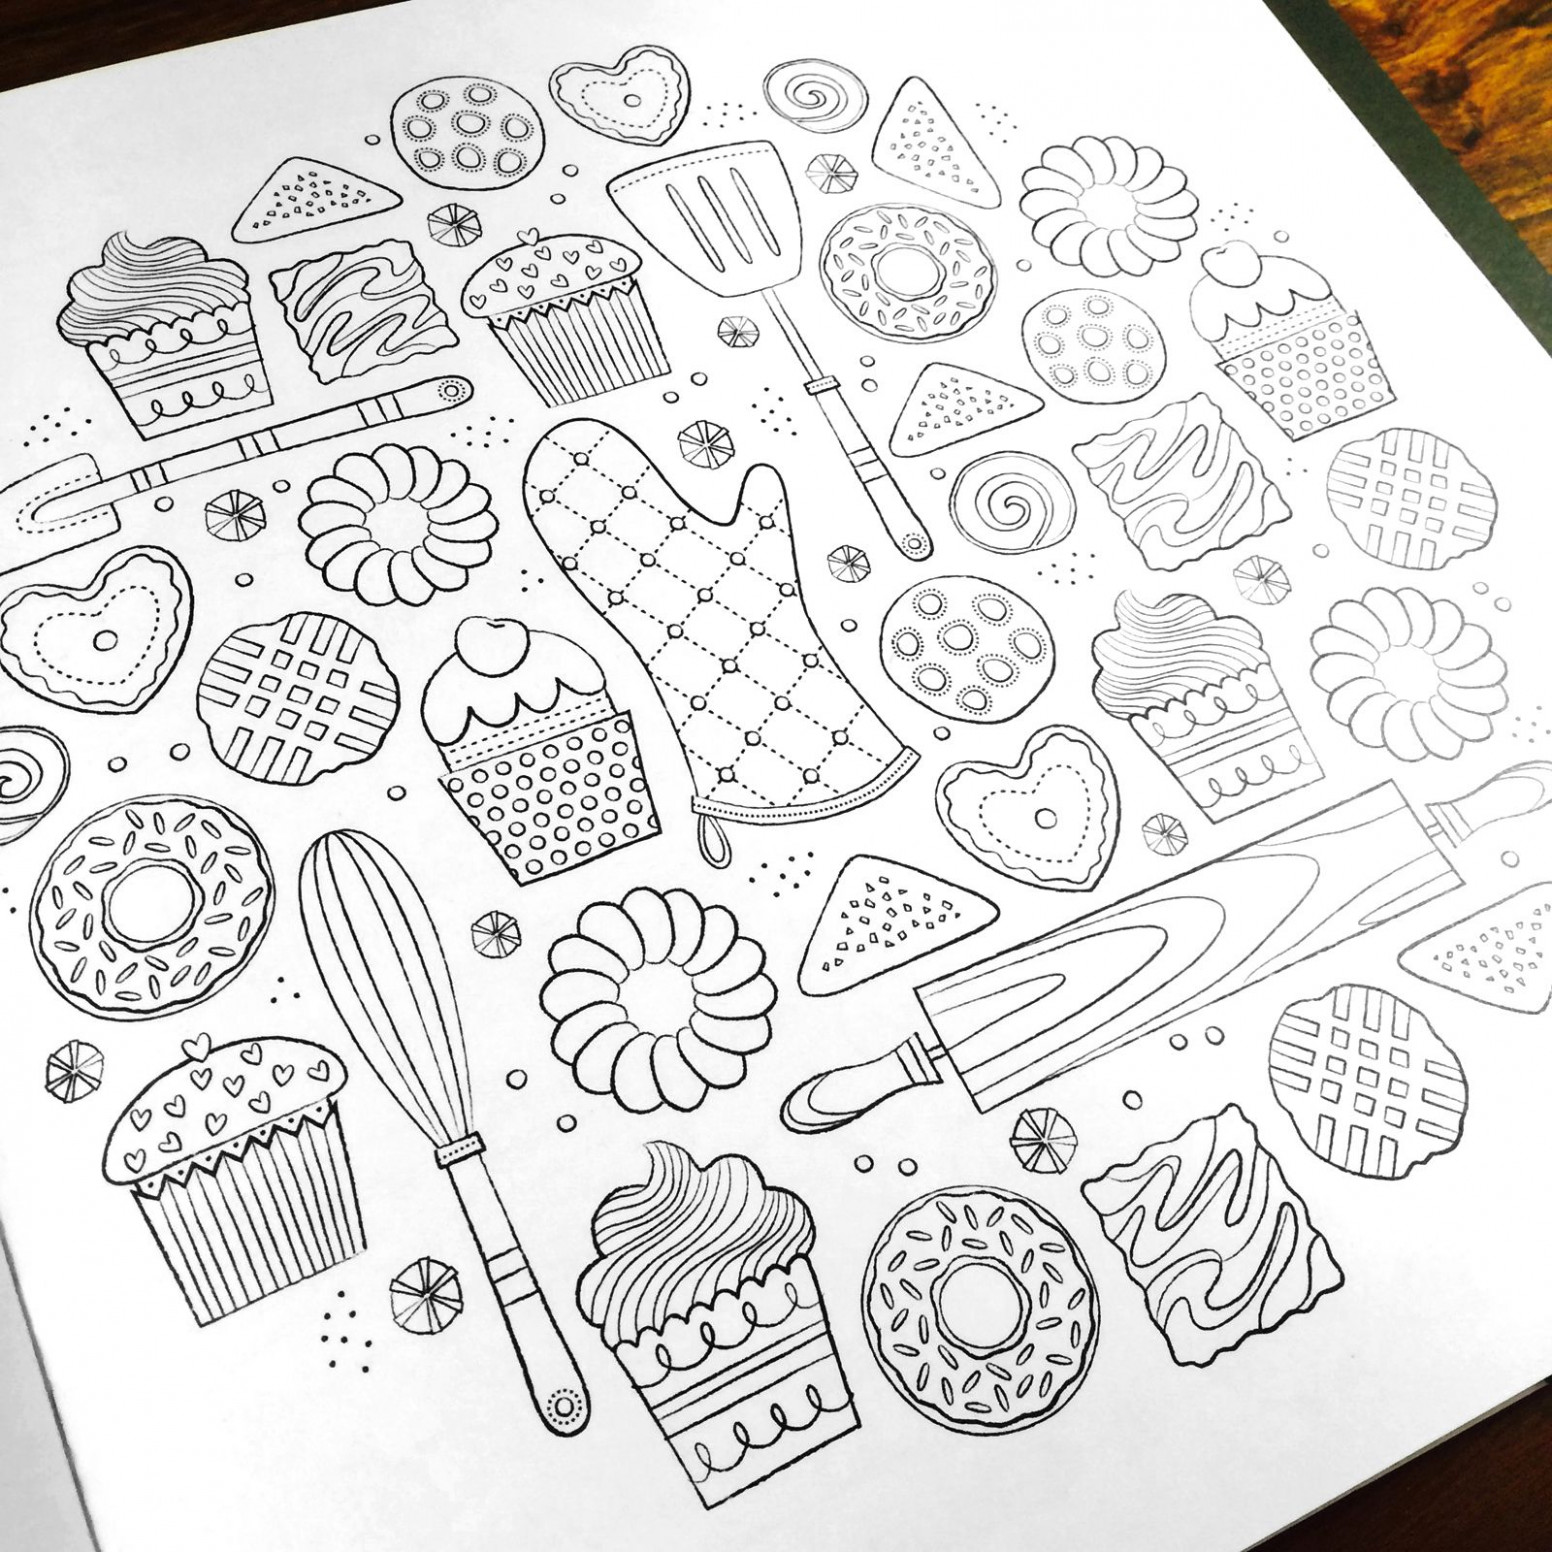 A hand-crafted coloring book for adults featuring intricate designs ...